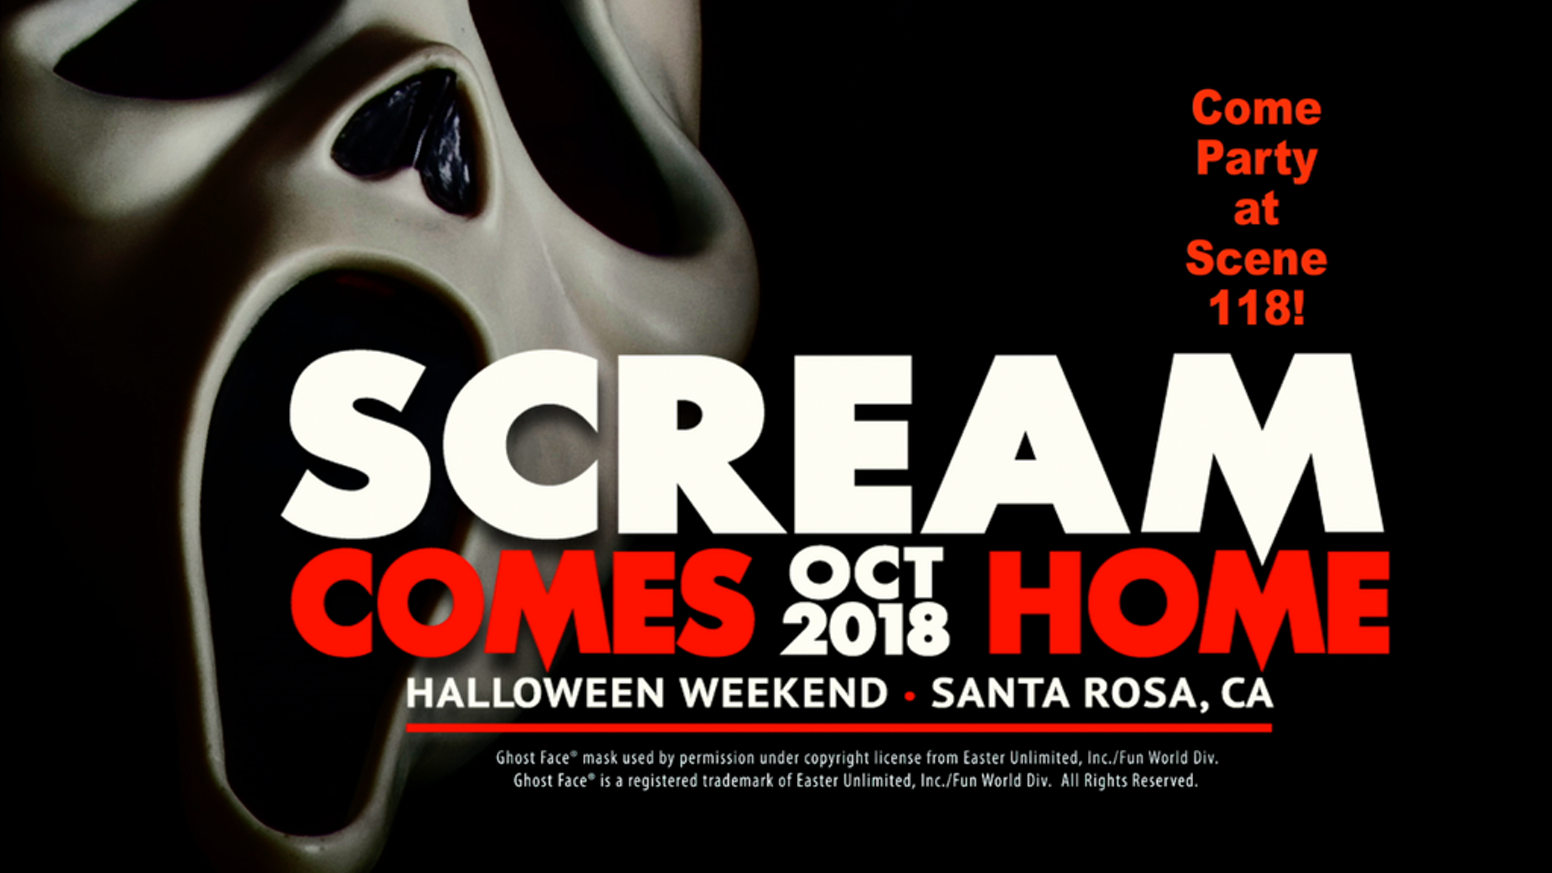 Scream Comes Home By Anthony Masi Are You Still Screaming Or What